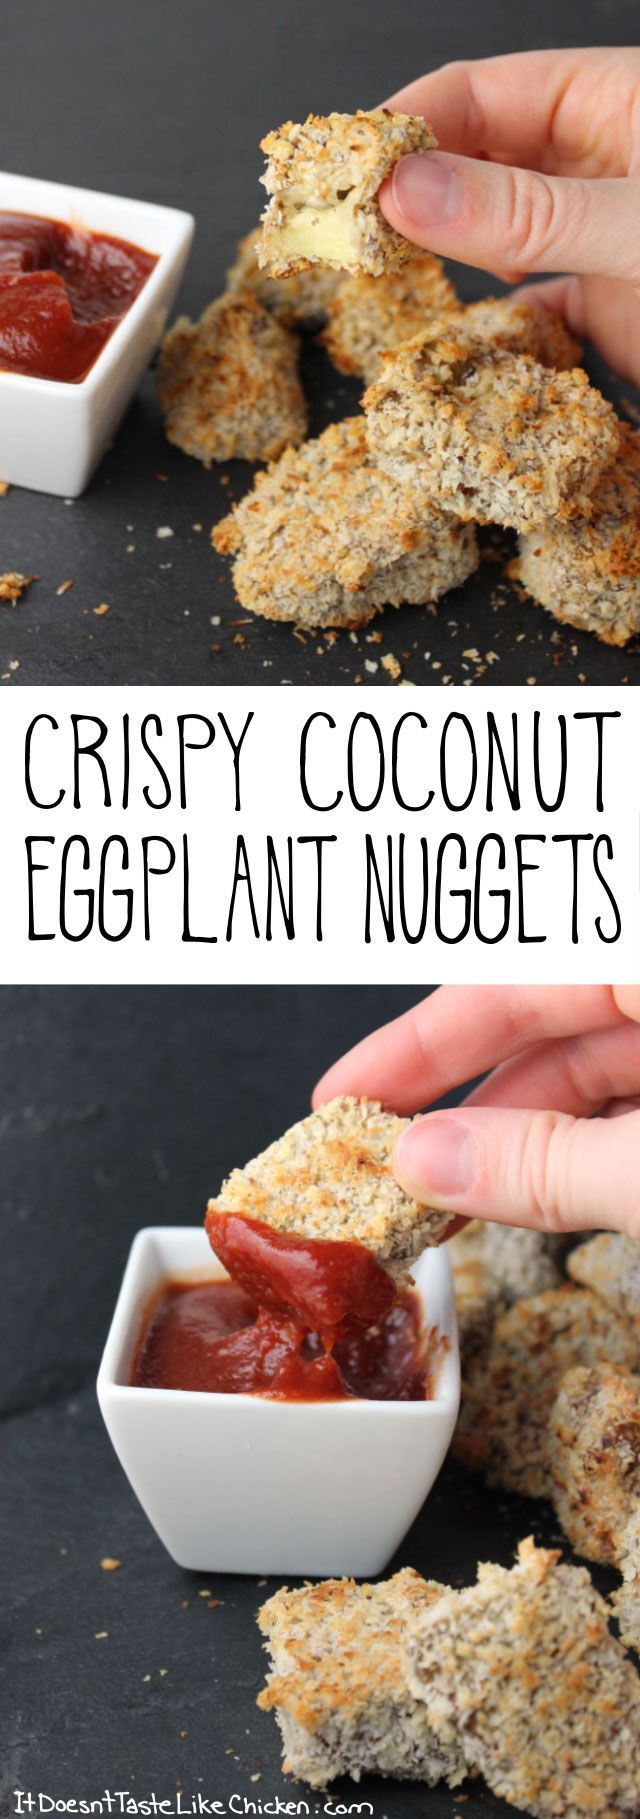 ☆Crispy Coconut Eggplant Nuggets! Even eggplant haters love this recipes. A great vegan and vegetarian appetizer. Gluten free options included. #itdoesnttastelikechicken